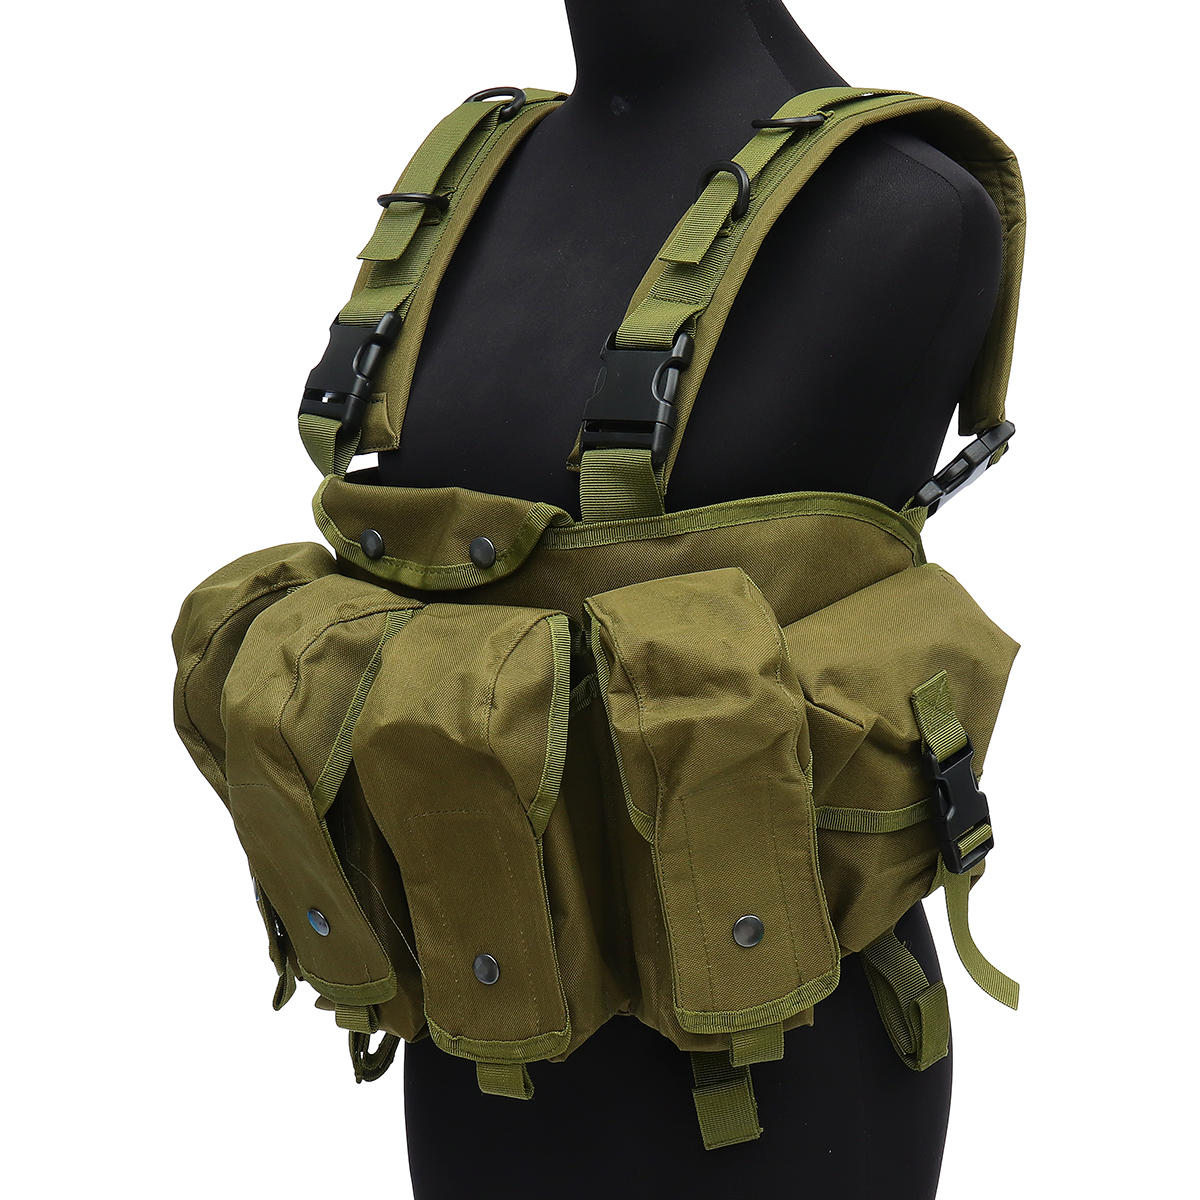 Chaleco táctico unisex al aire libre Combat Game Training Storage Carrier Belly Pocket Vest - 8